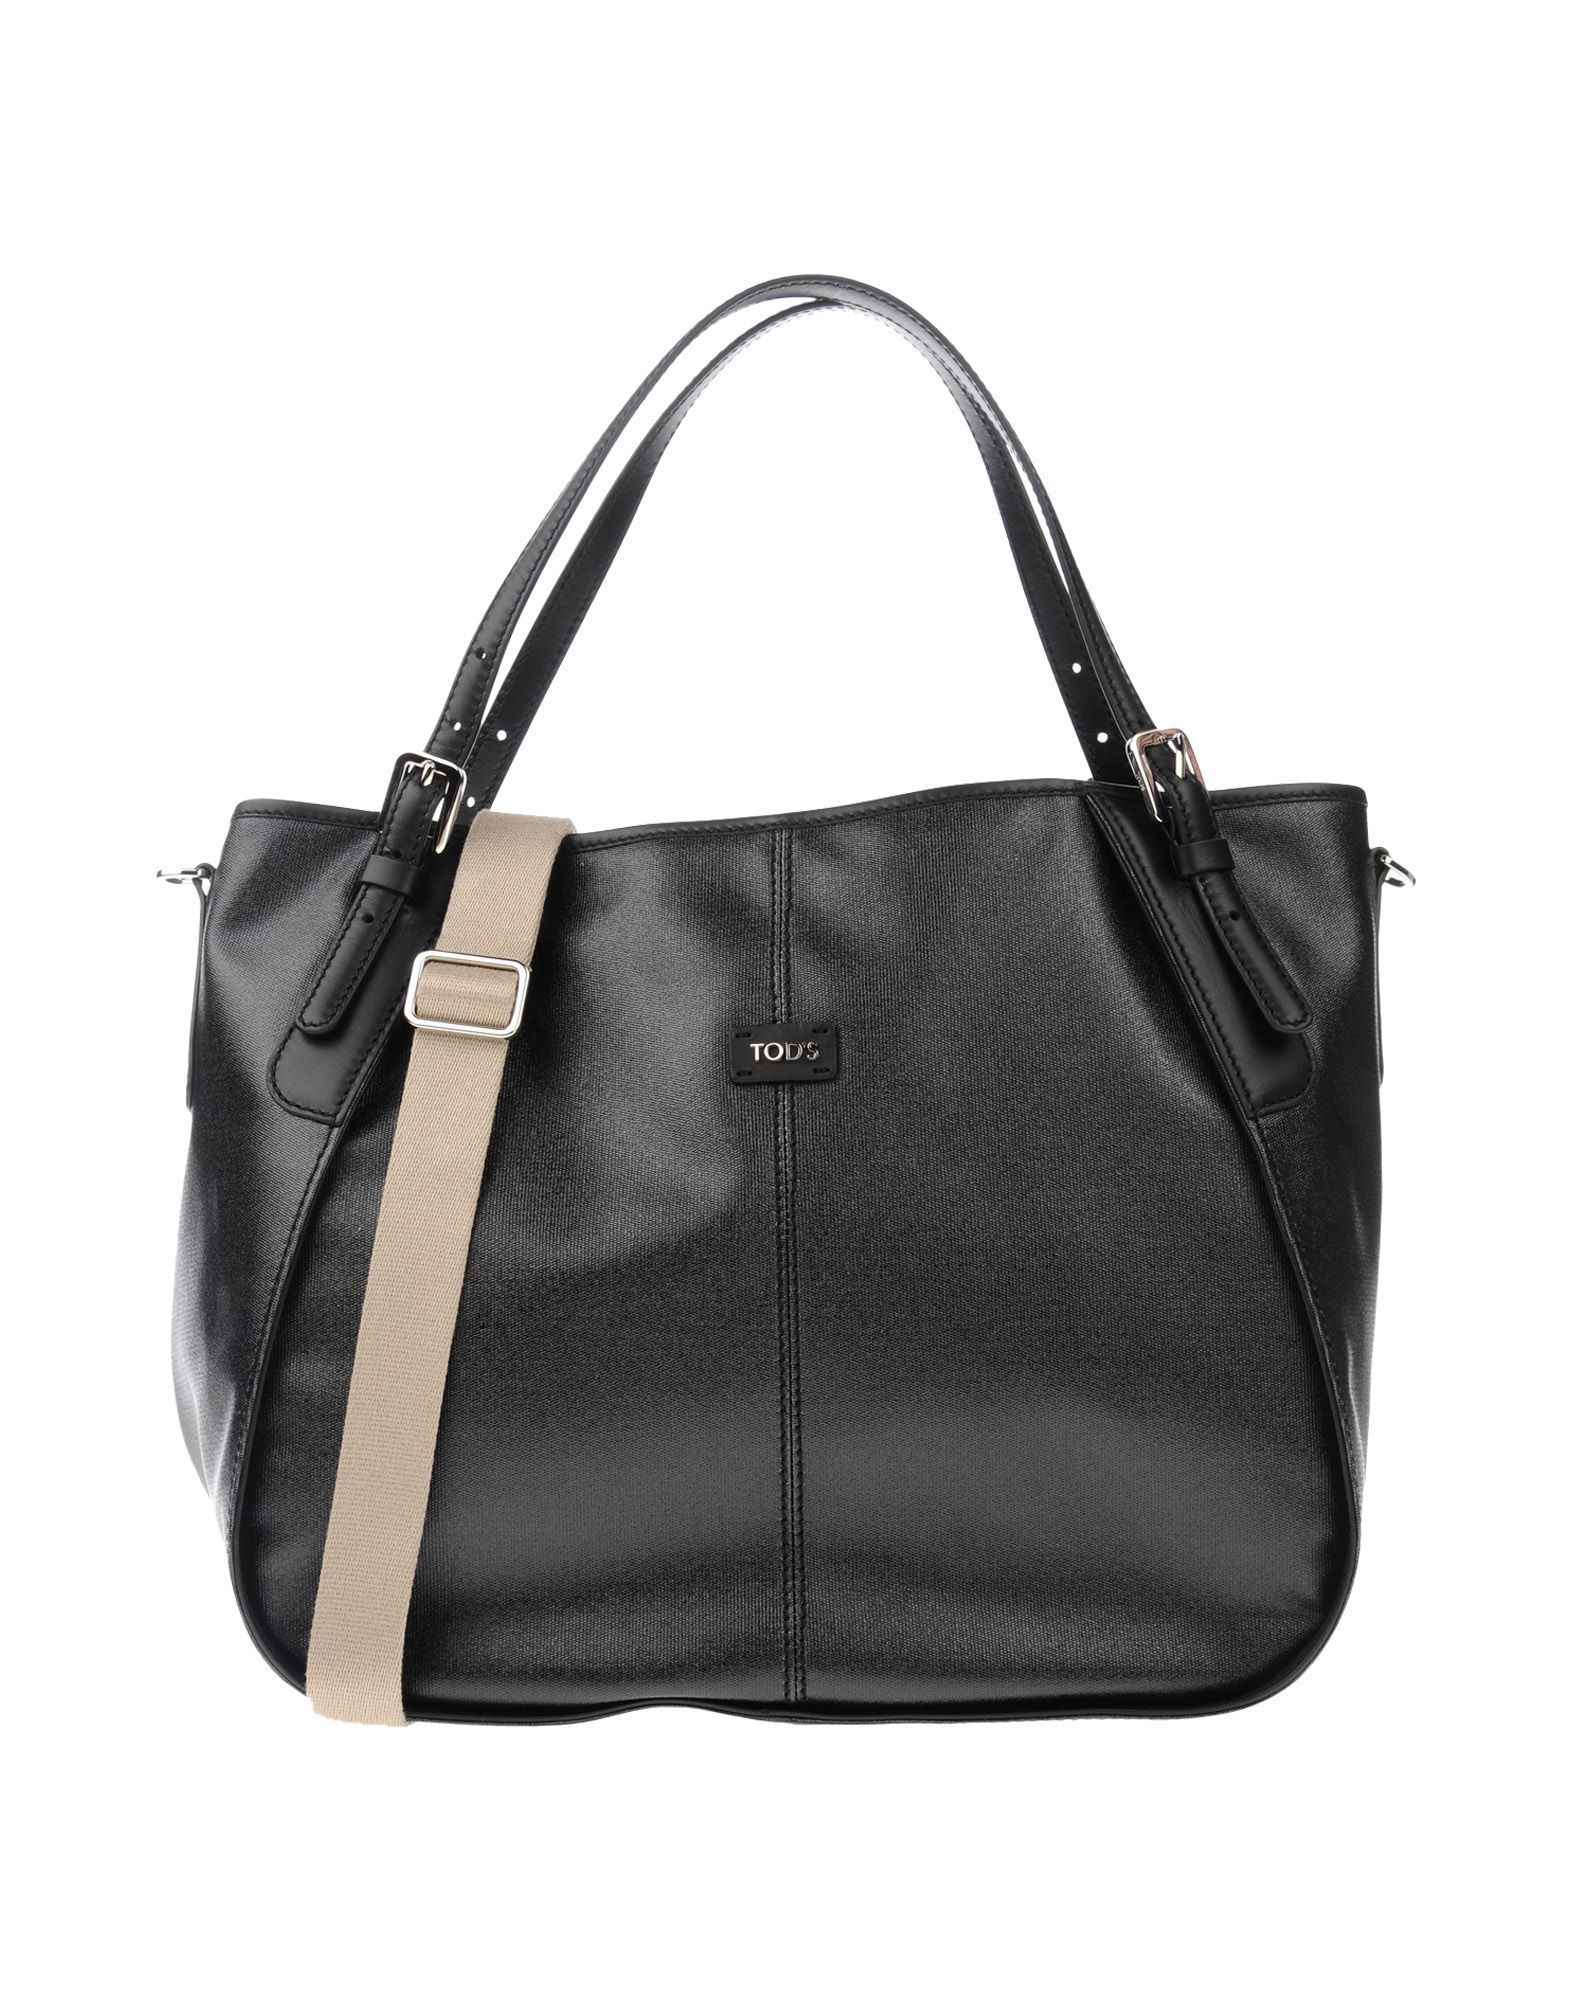 TOD'S(トッズ) Leather Hand Bag【Sale!関税送料込】